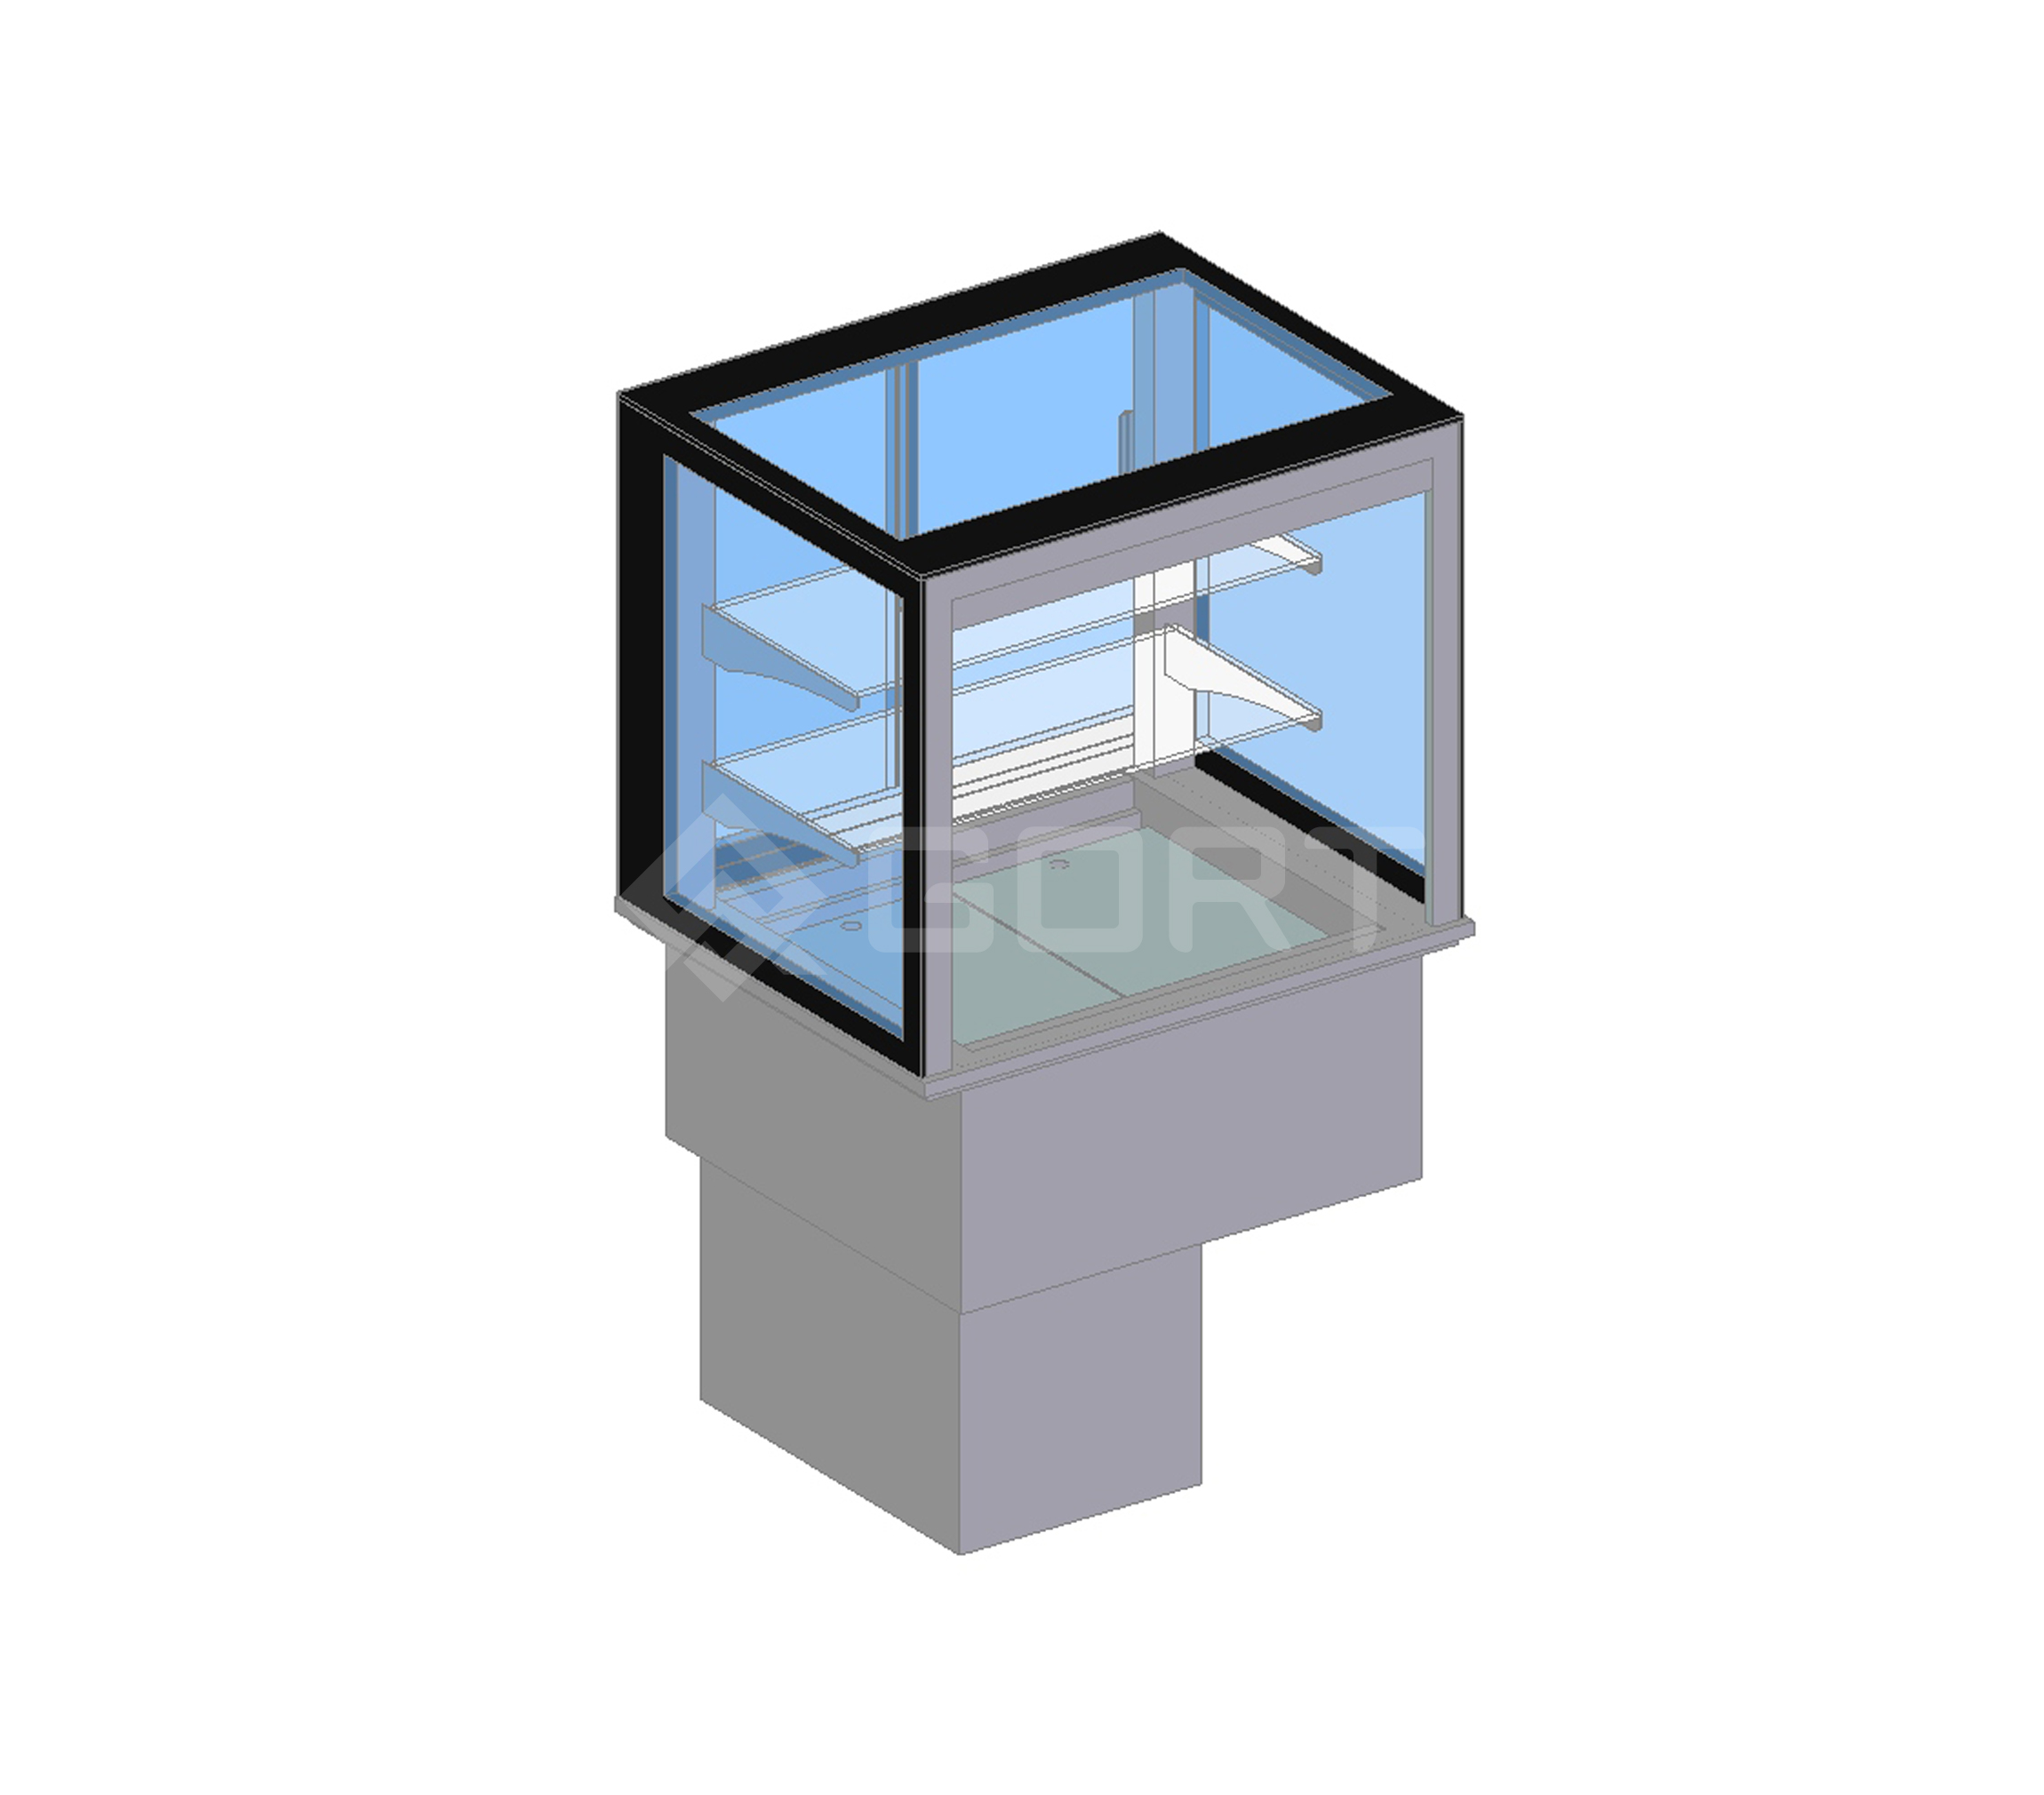 Island refrigerated display DROP-IN, 2 x GN1/1, open